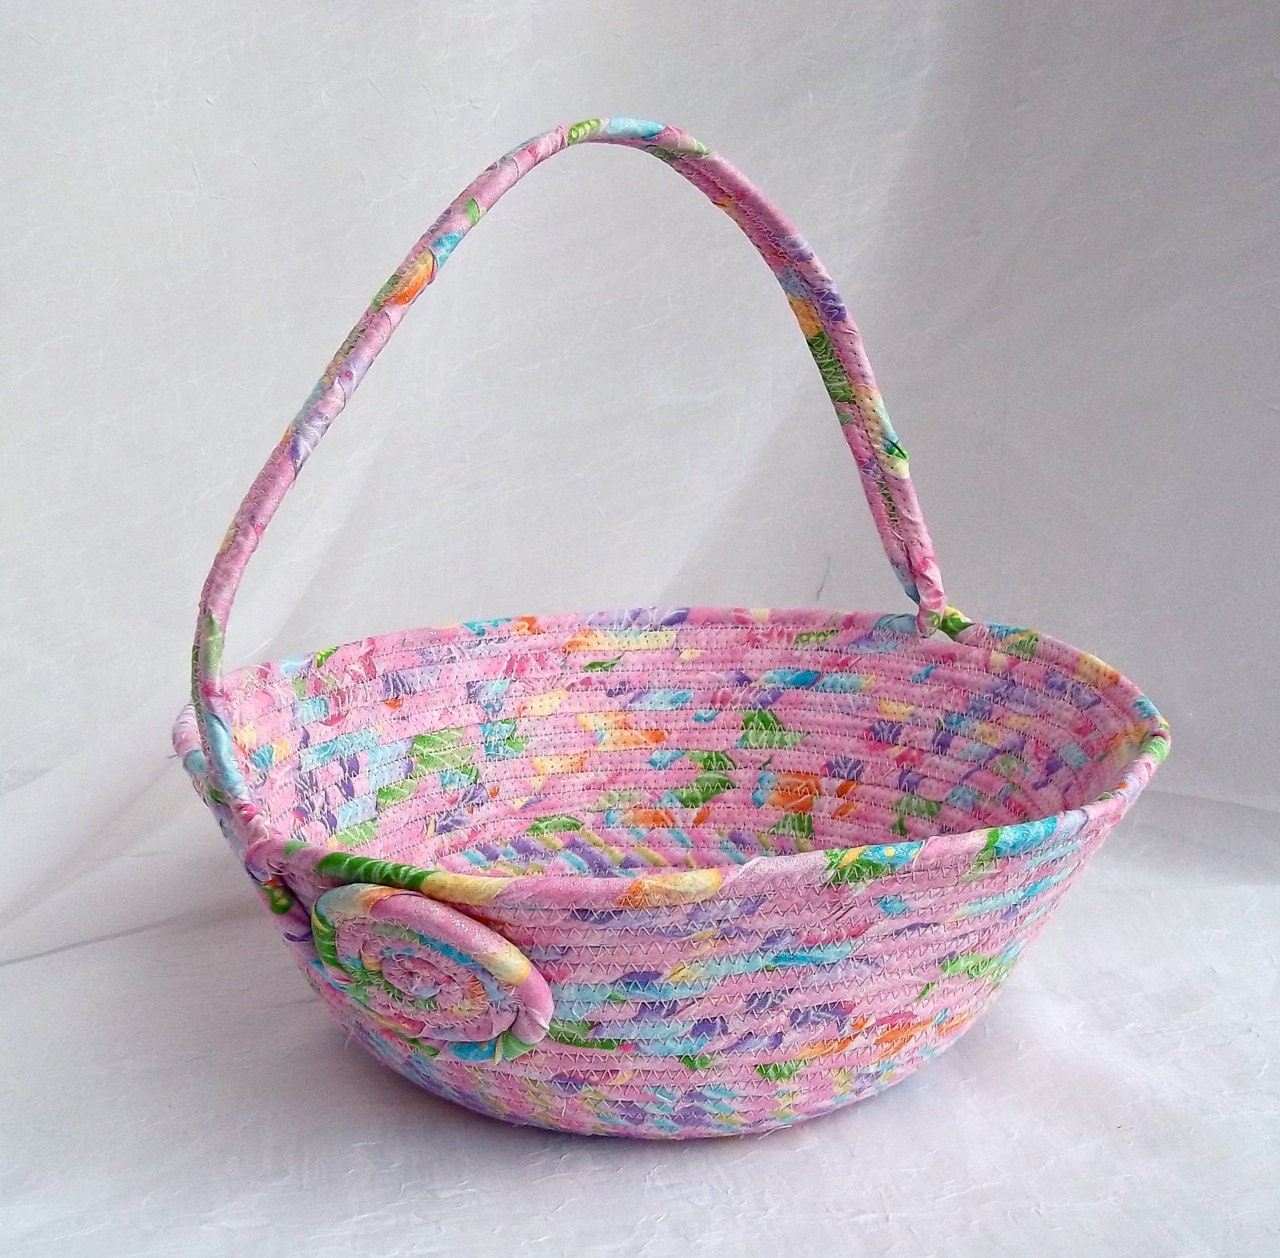 How To Make A Flower Girl Basket With Fabric : Pink easter basket flower girl handmade by